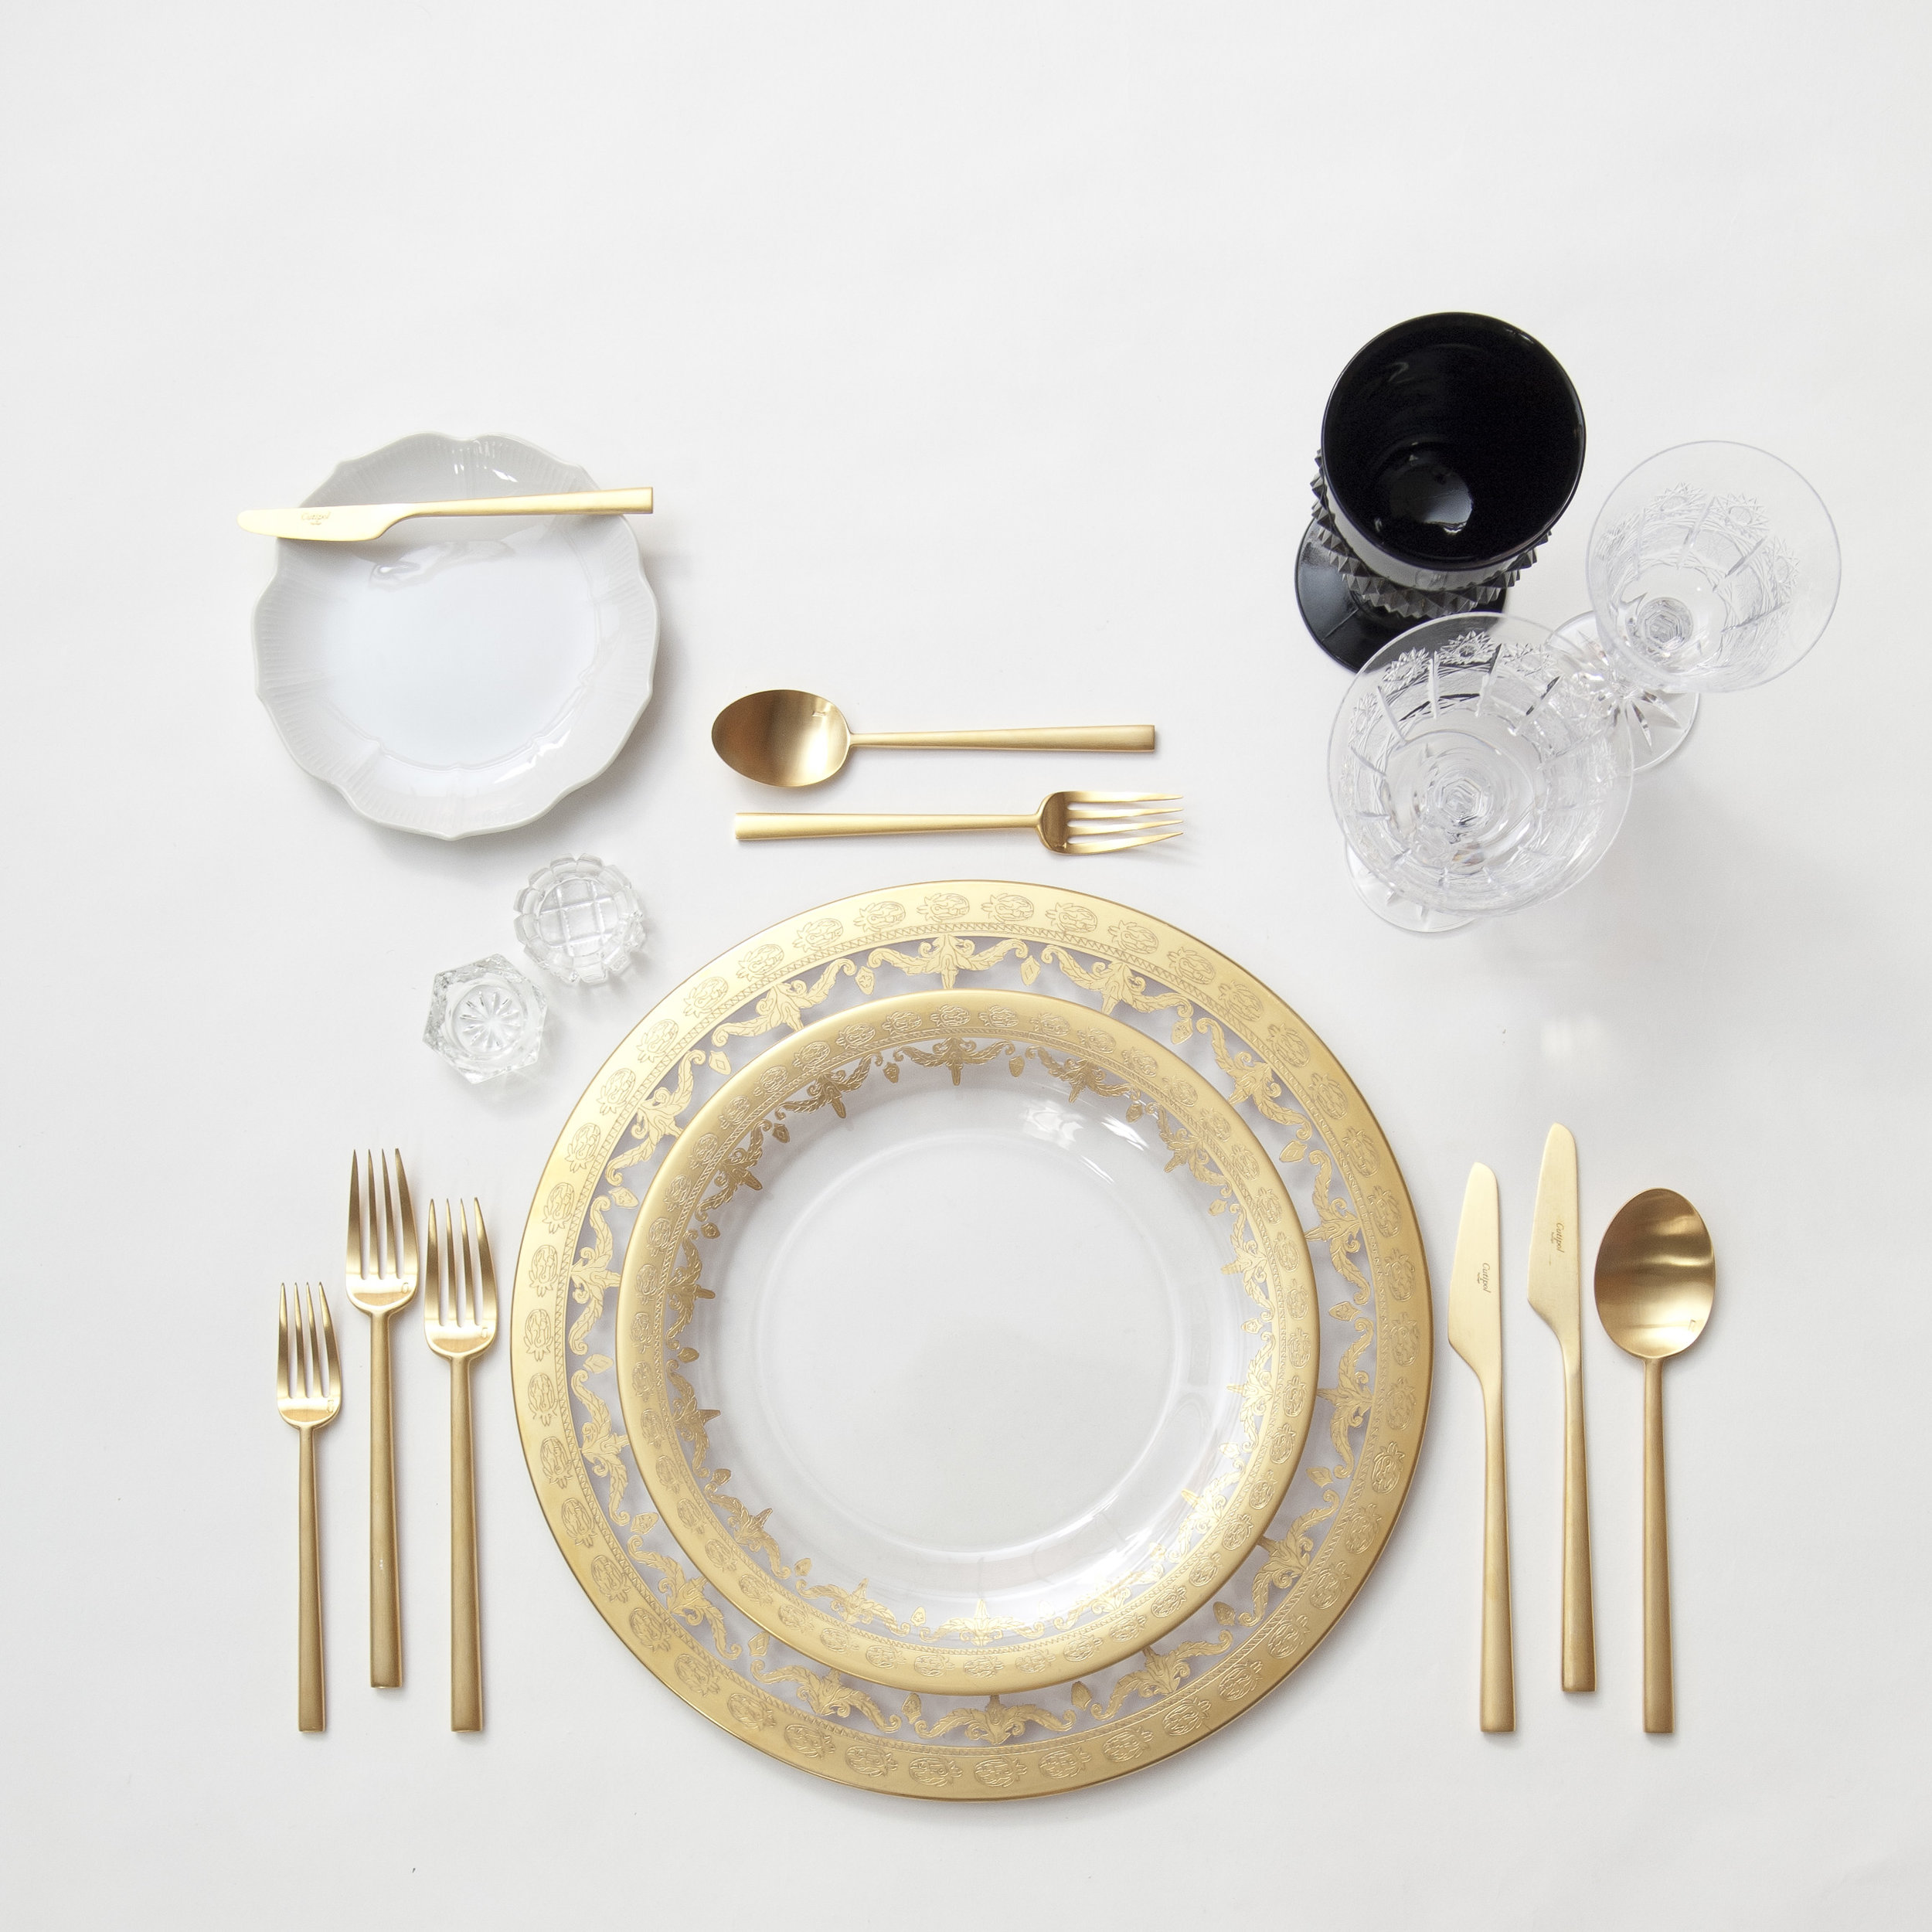 RENT: Versailles Glass Chargers/Dinnerware in 24k Gold + White Collection Vintage China + Rondo Flatware in Brushed 24k Gold + Black Vintage Goblets + Czech Crystal Stemware + Antique Crystal Salt Cellars  SHOP: Rondo Flatware in Brushed 24k Gold